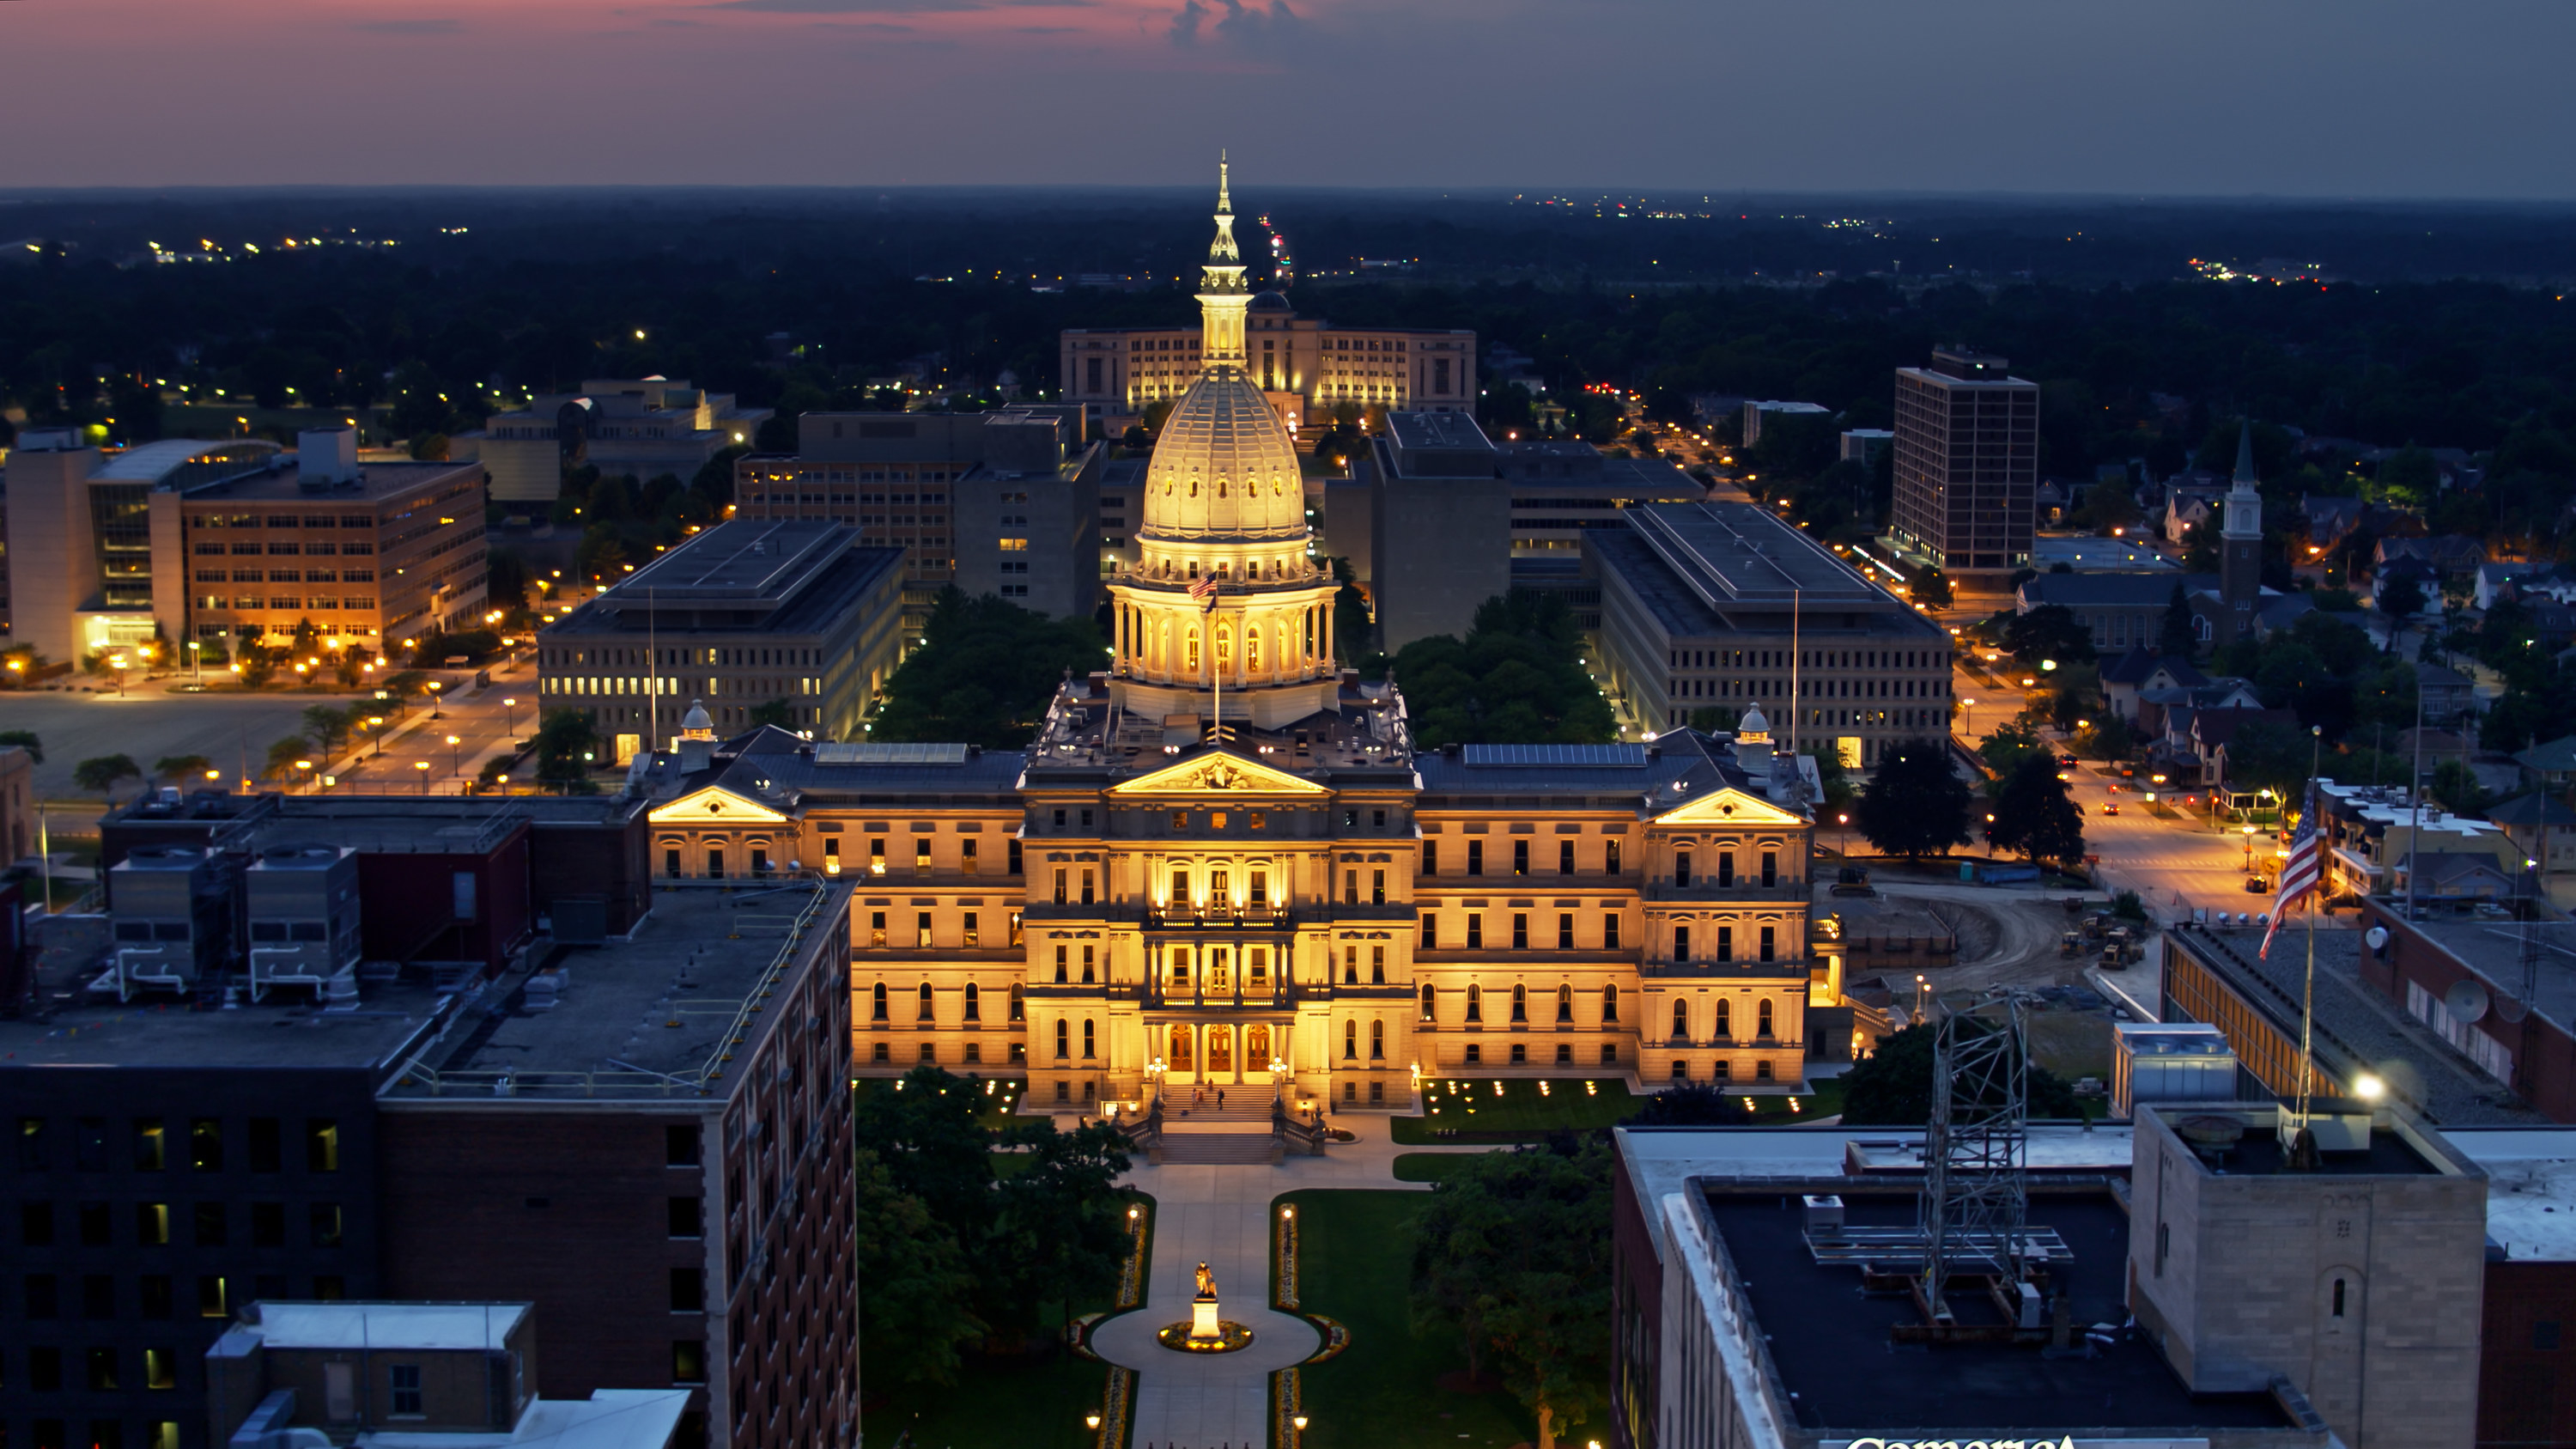 Drone shot of the Michigan State Capitol in Lansing on a summer evening